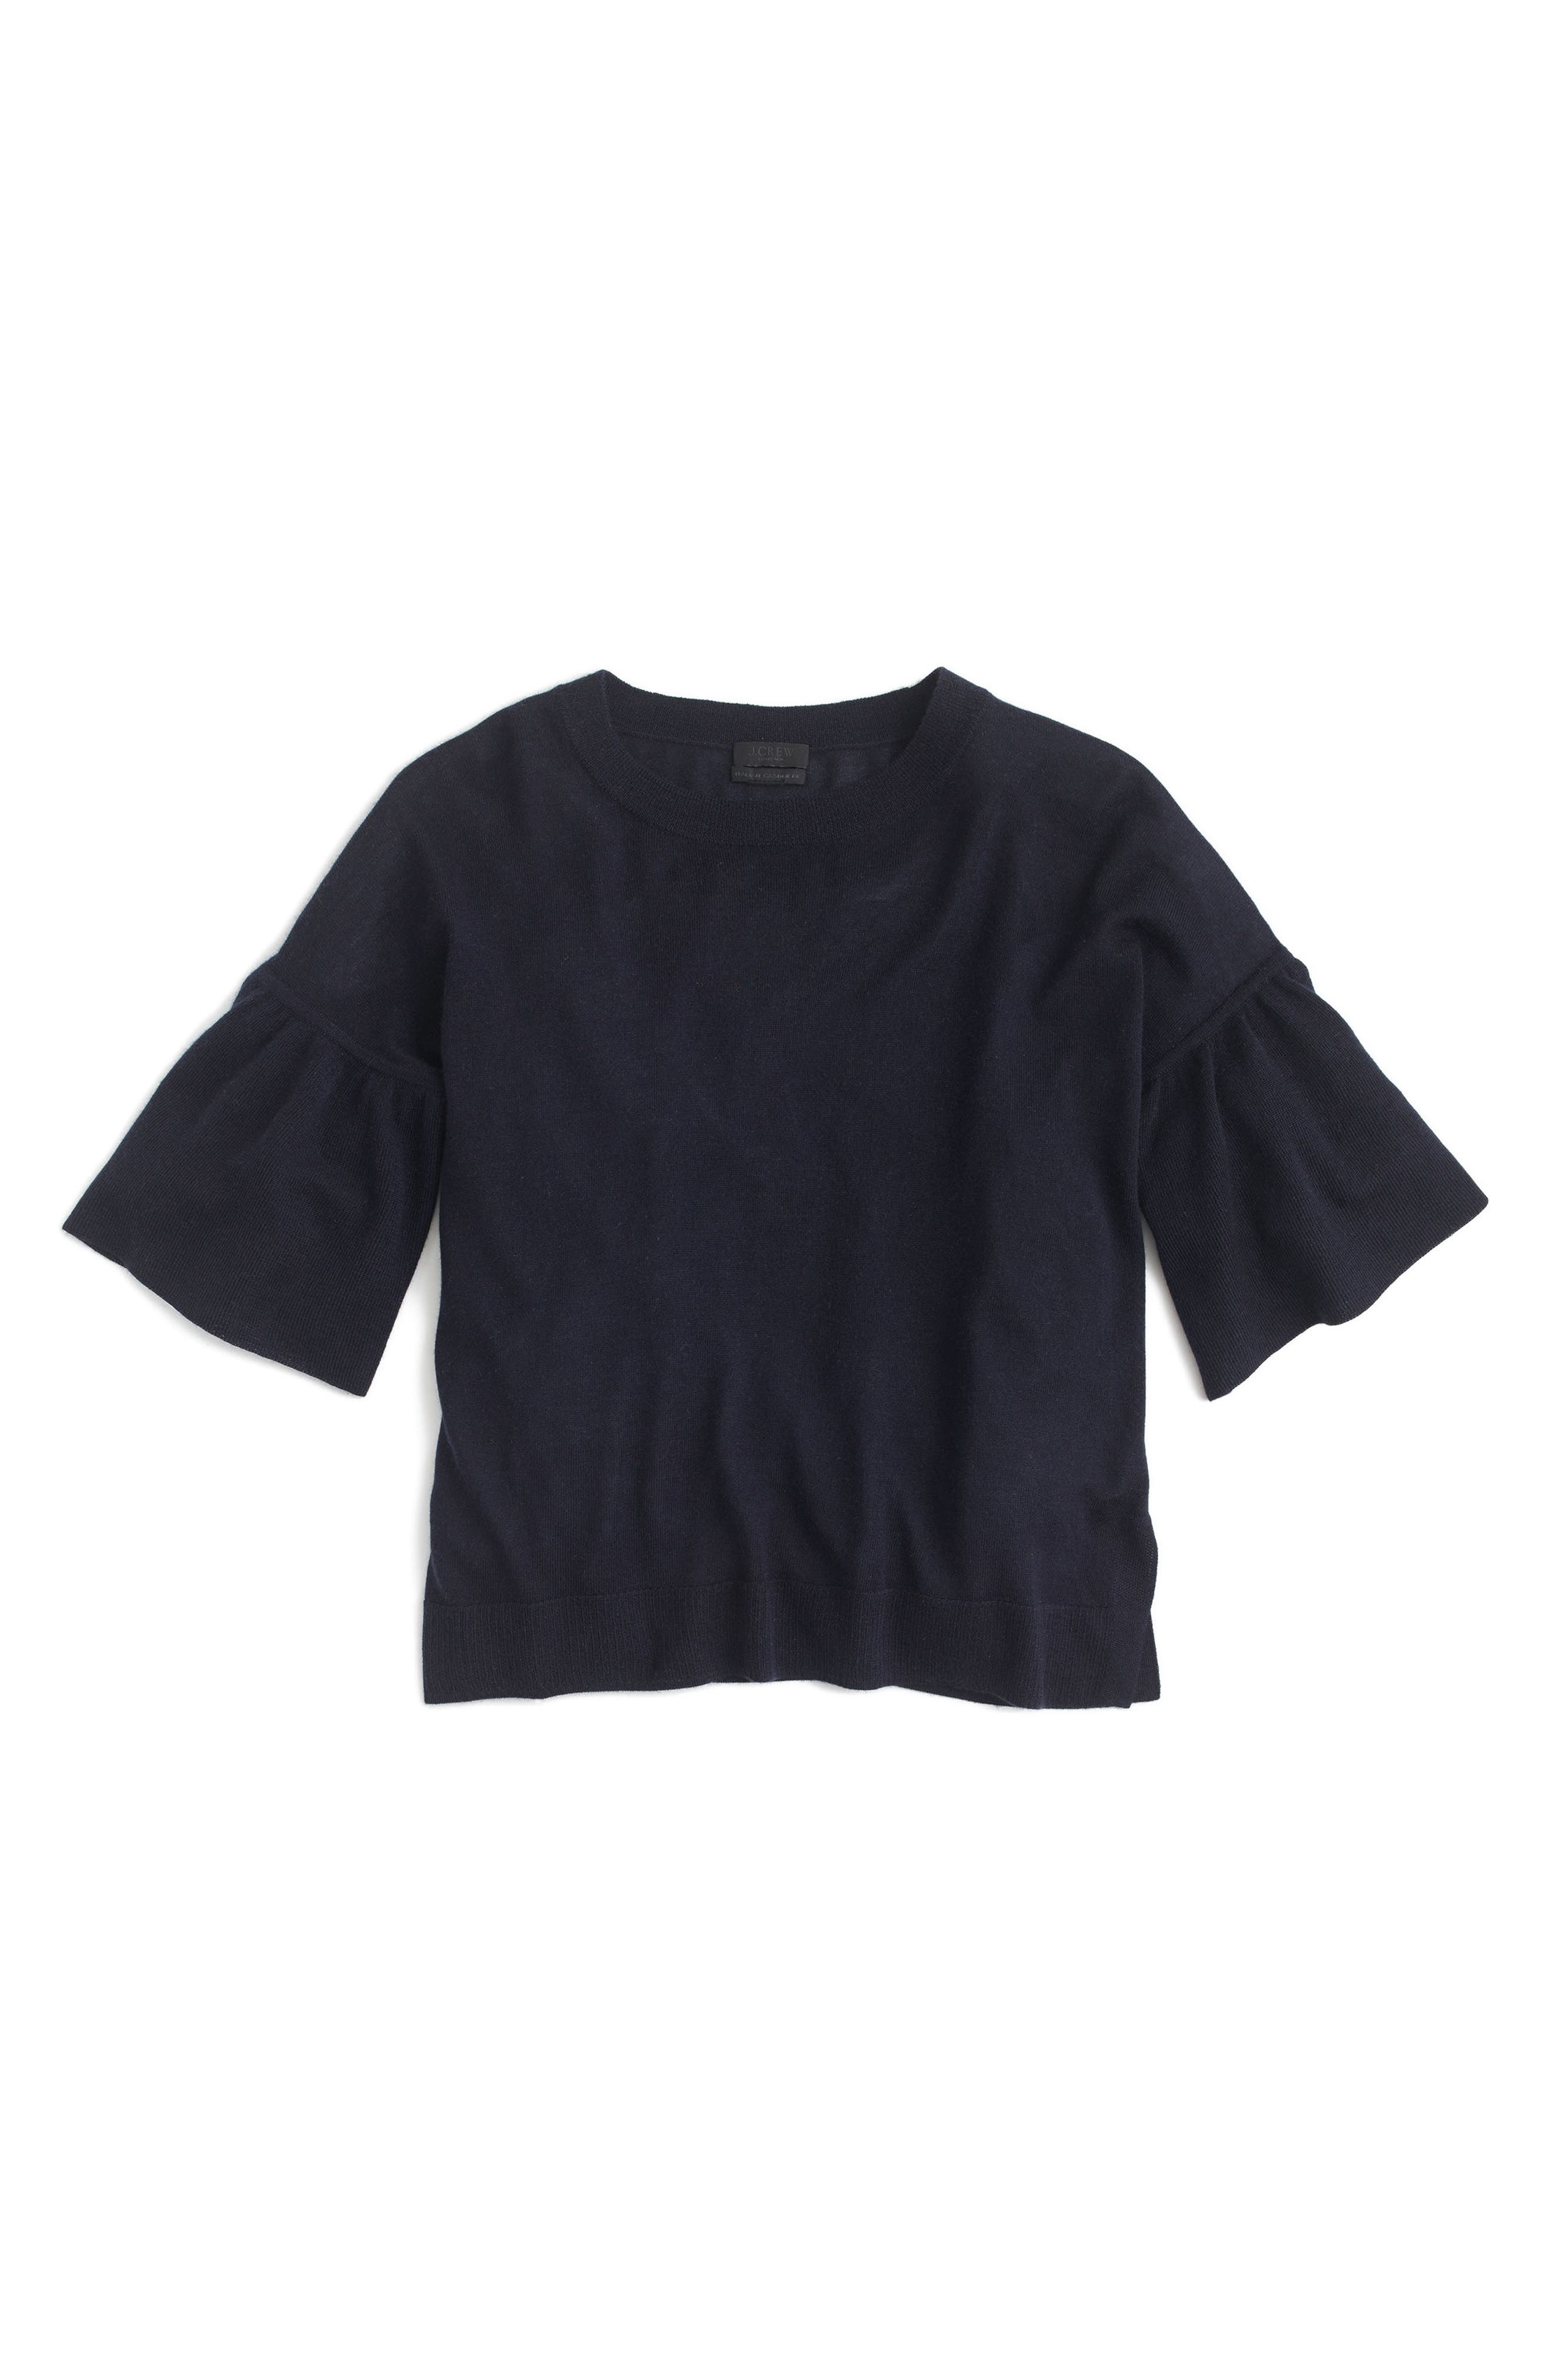 Alternate Image 3  - J.Crew Featherweight Cashmere Ruffle Sleeve Sweater